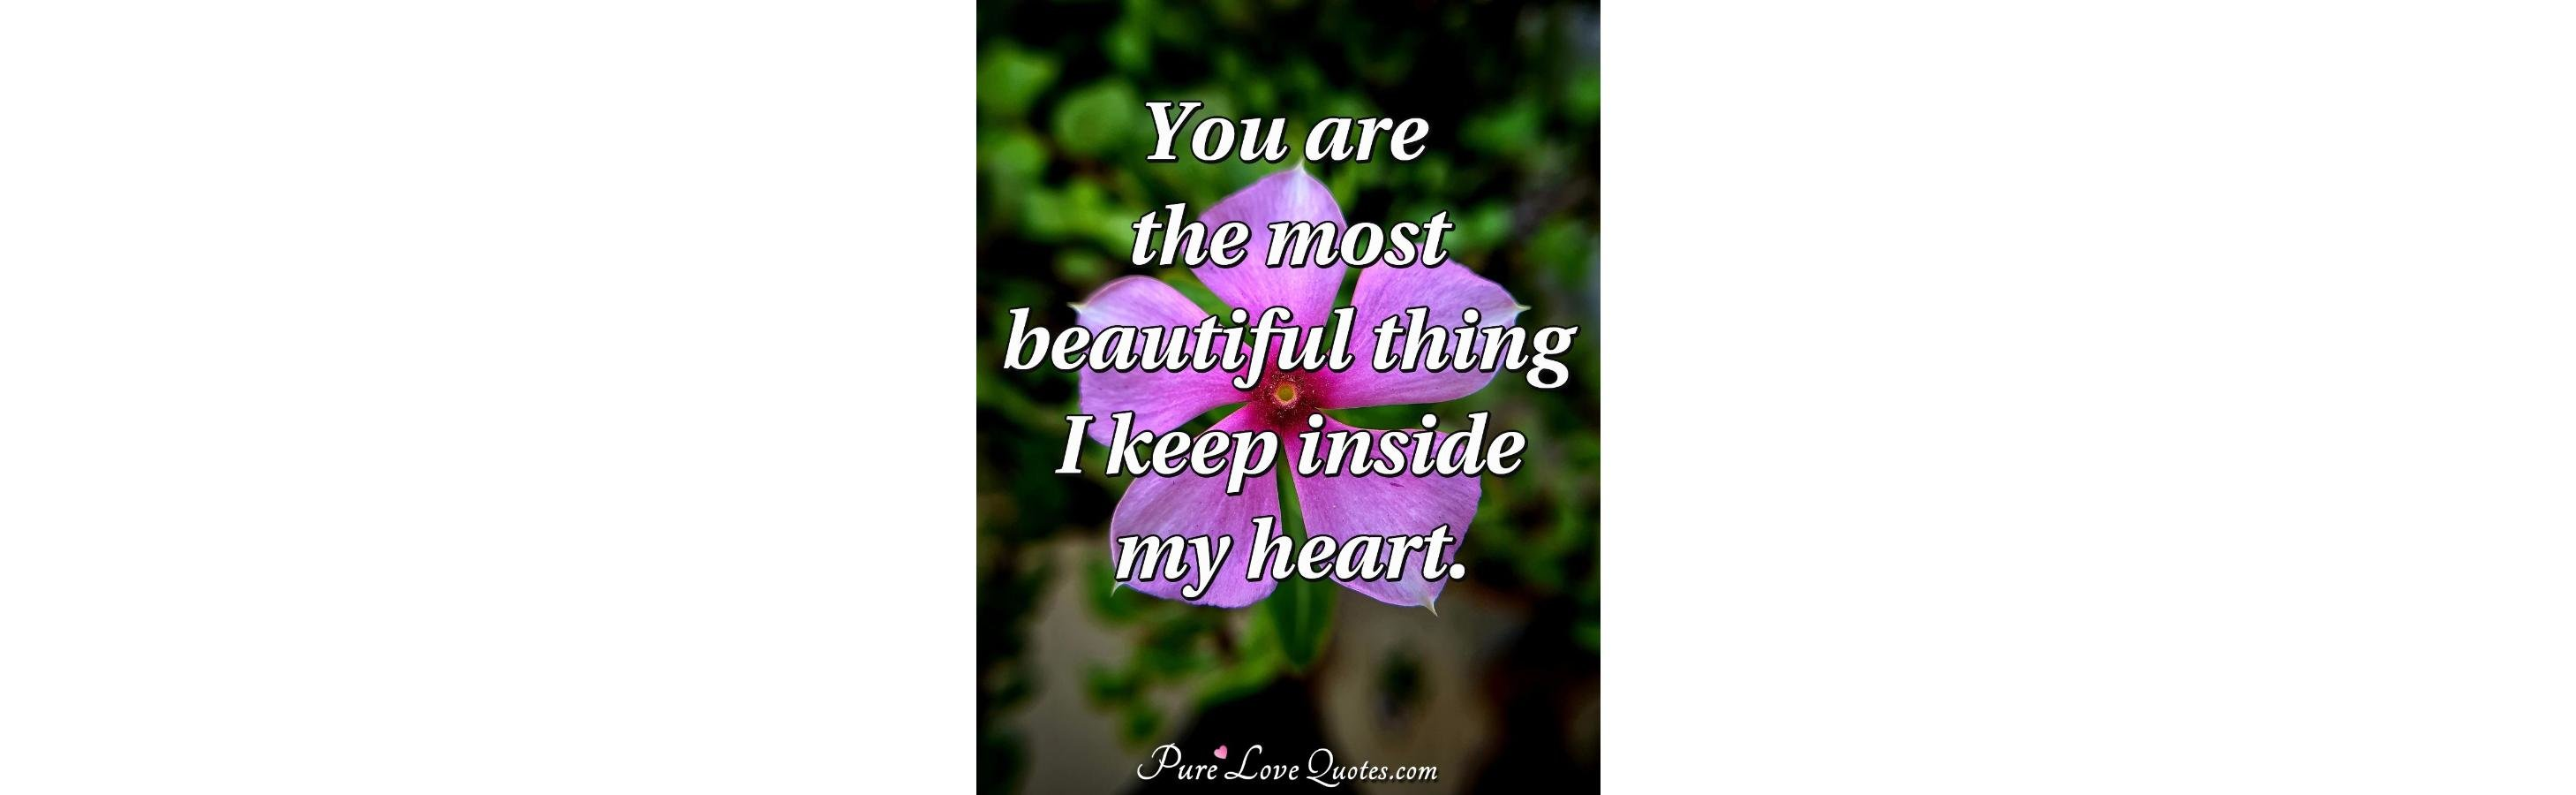 You Are The Most Beautiful Thing I Keep Inside My Heart